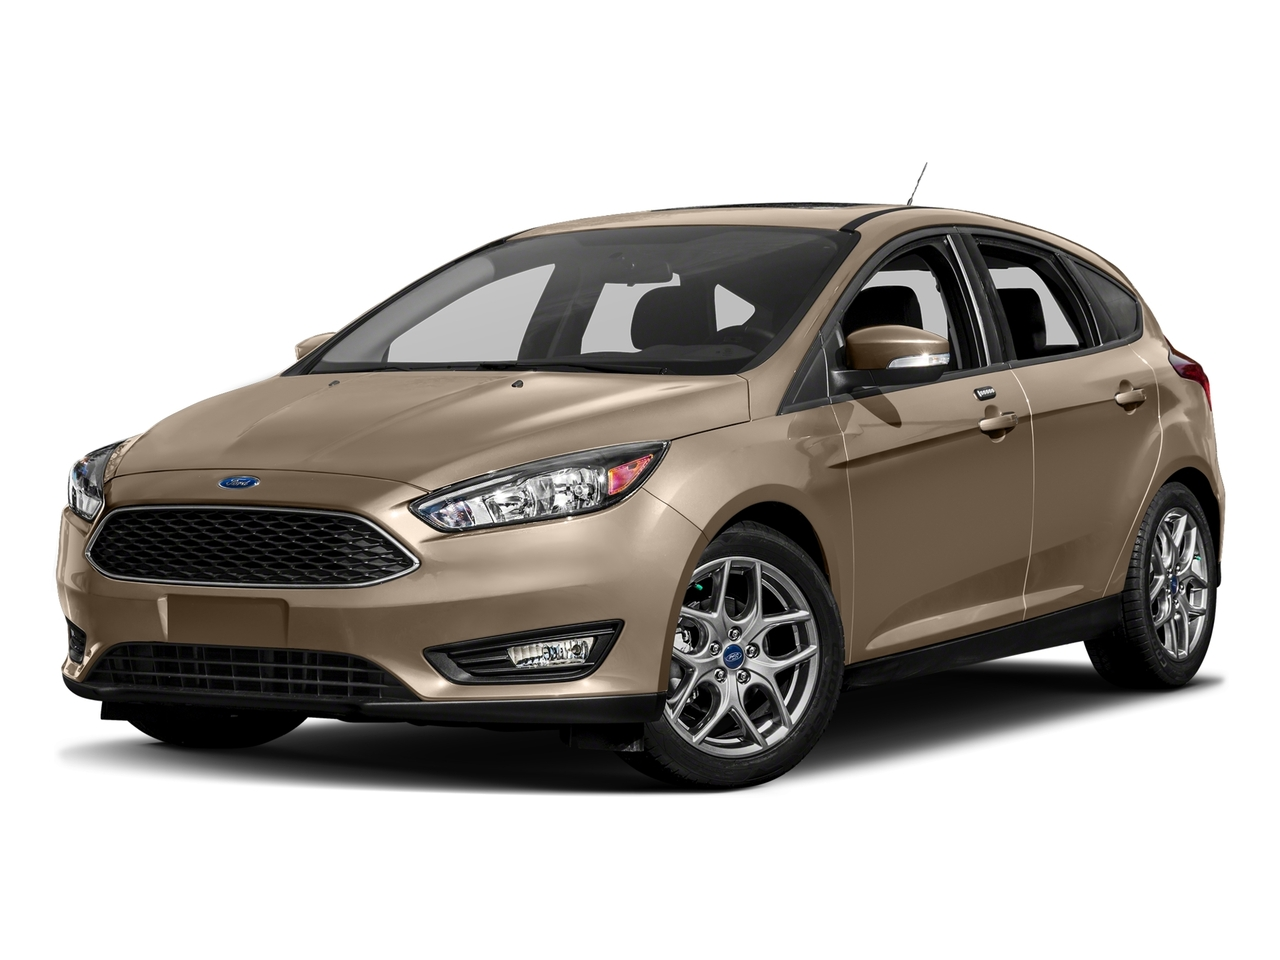 2017 Ford Focus SE Hatchback Slide